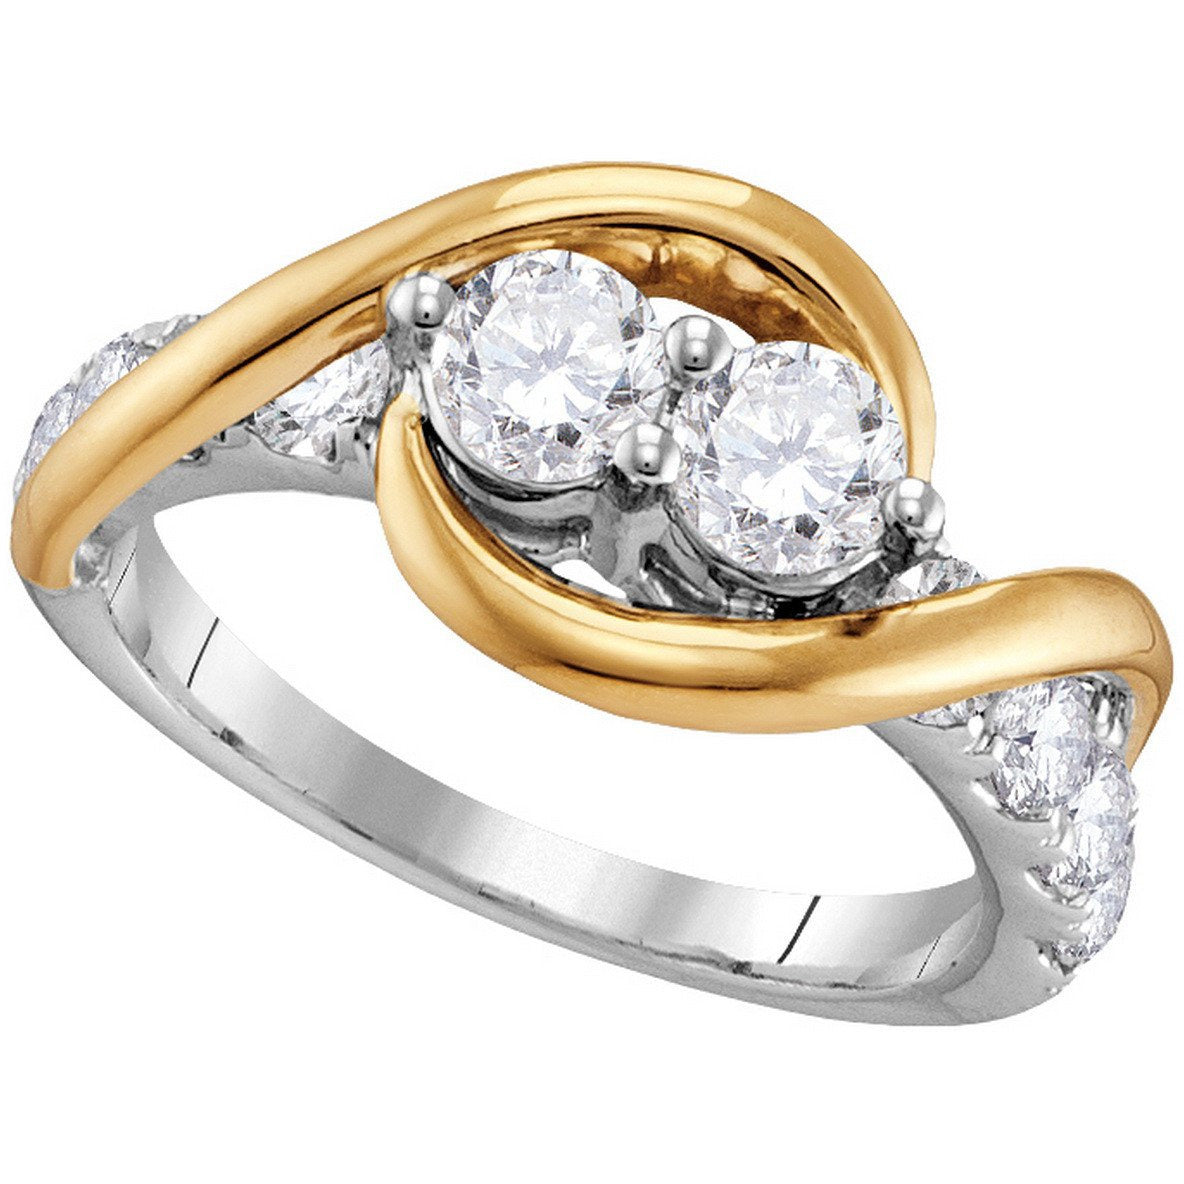 14kt Two-tone Gold Womens Round Diamond 2-stone Bridal Wedding Engagement Ring 1.00 Cttw 111799 - shirin-diamonds